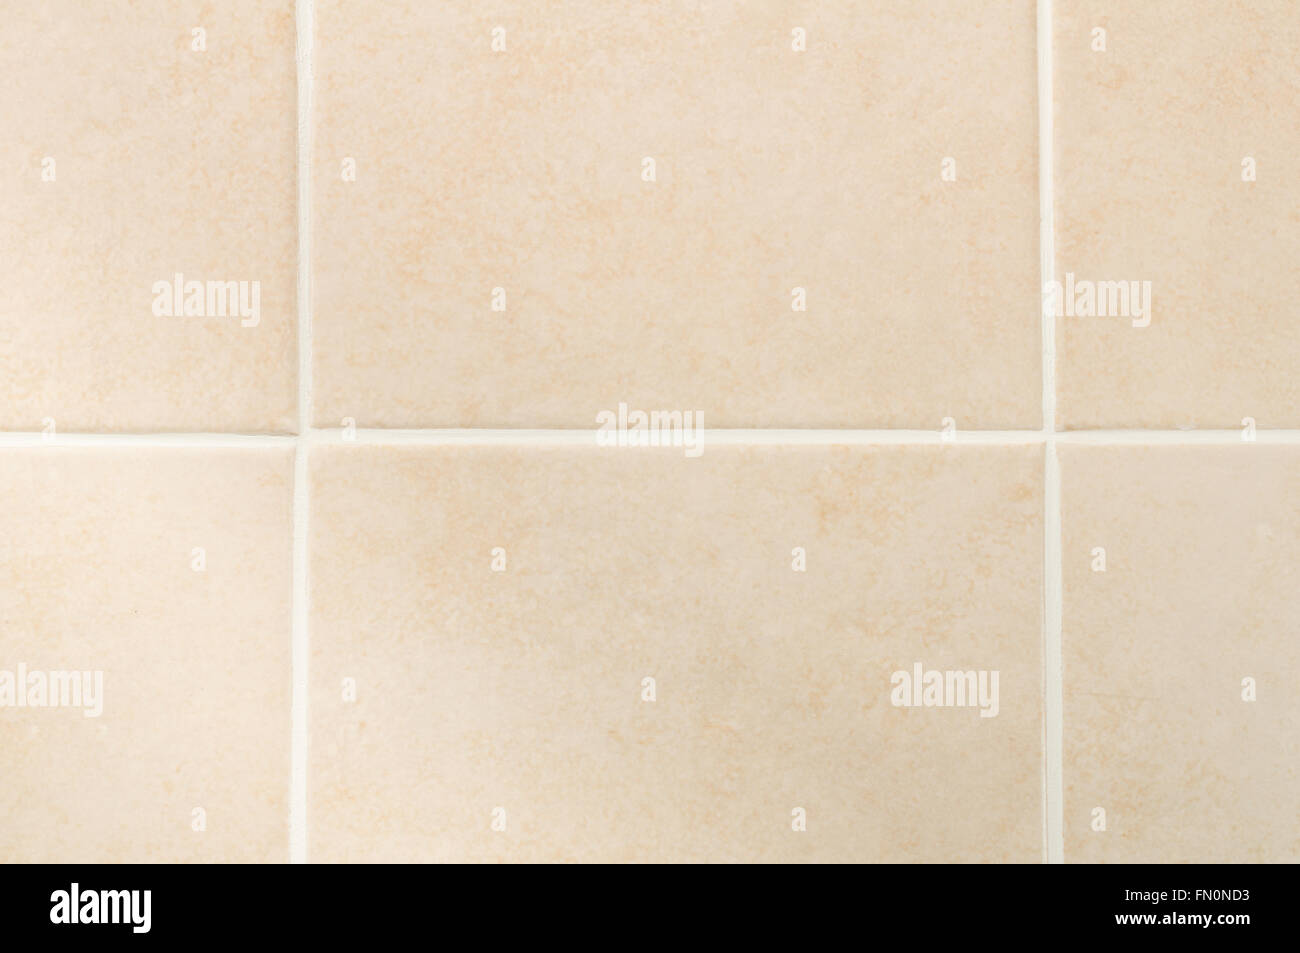 Cream tile wall with white grout pattern, front view Stock Photo ...